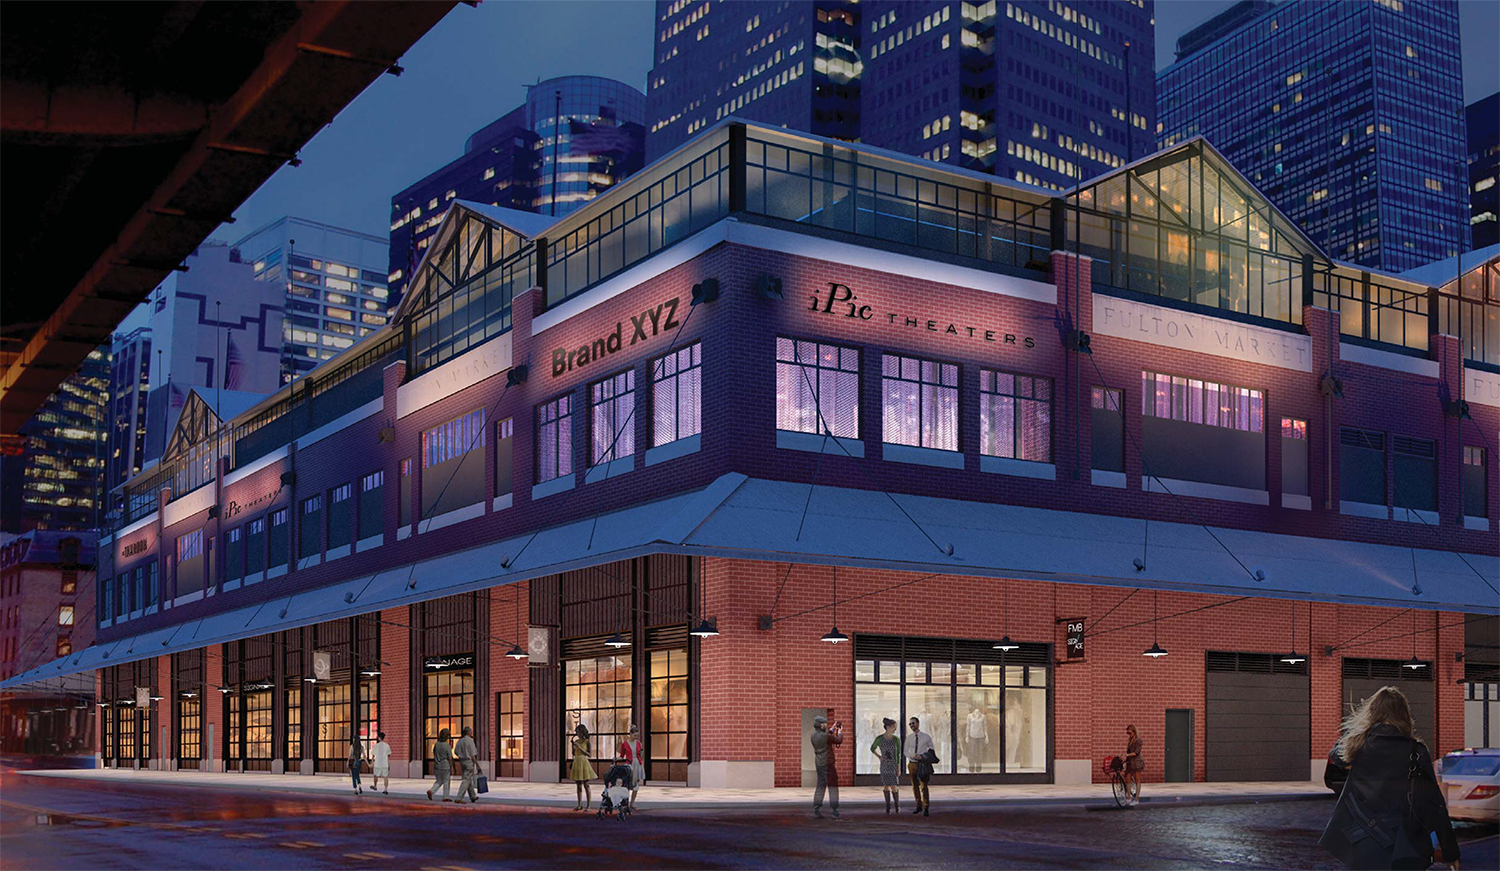 Proposal for Fulton Market Building, viewed from South and Beekman streets, night rendering